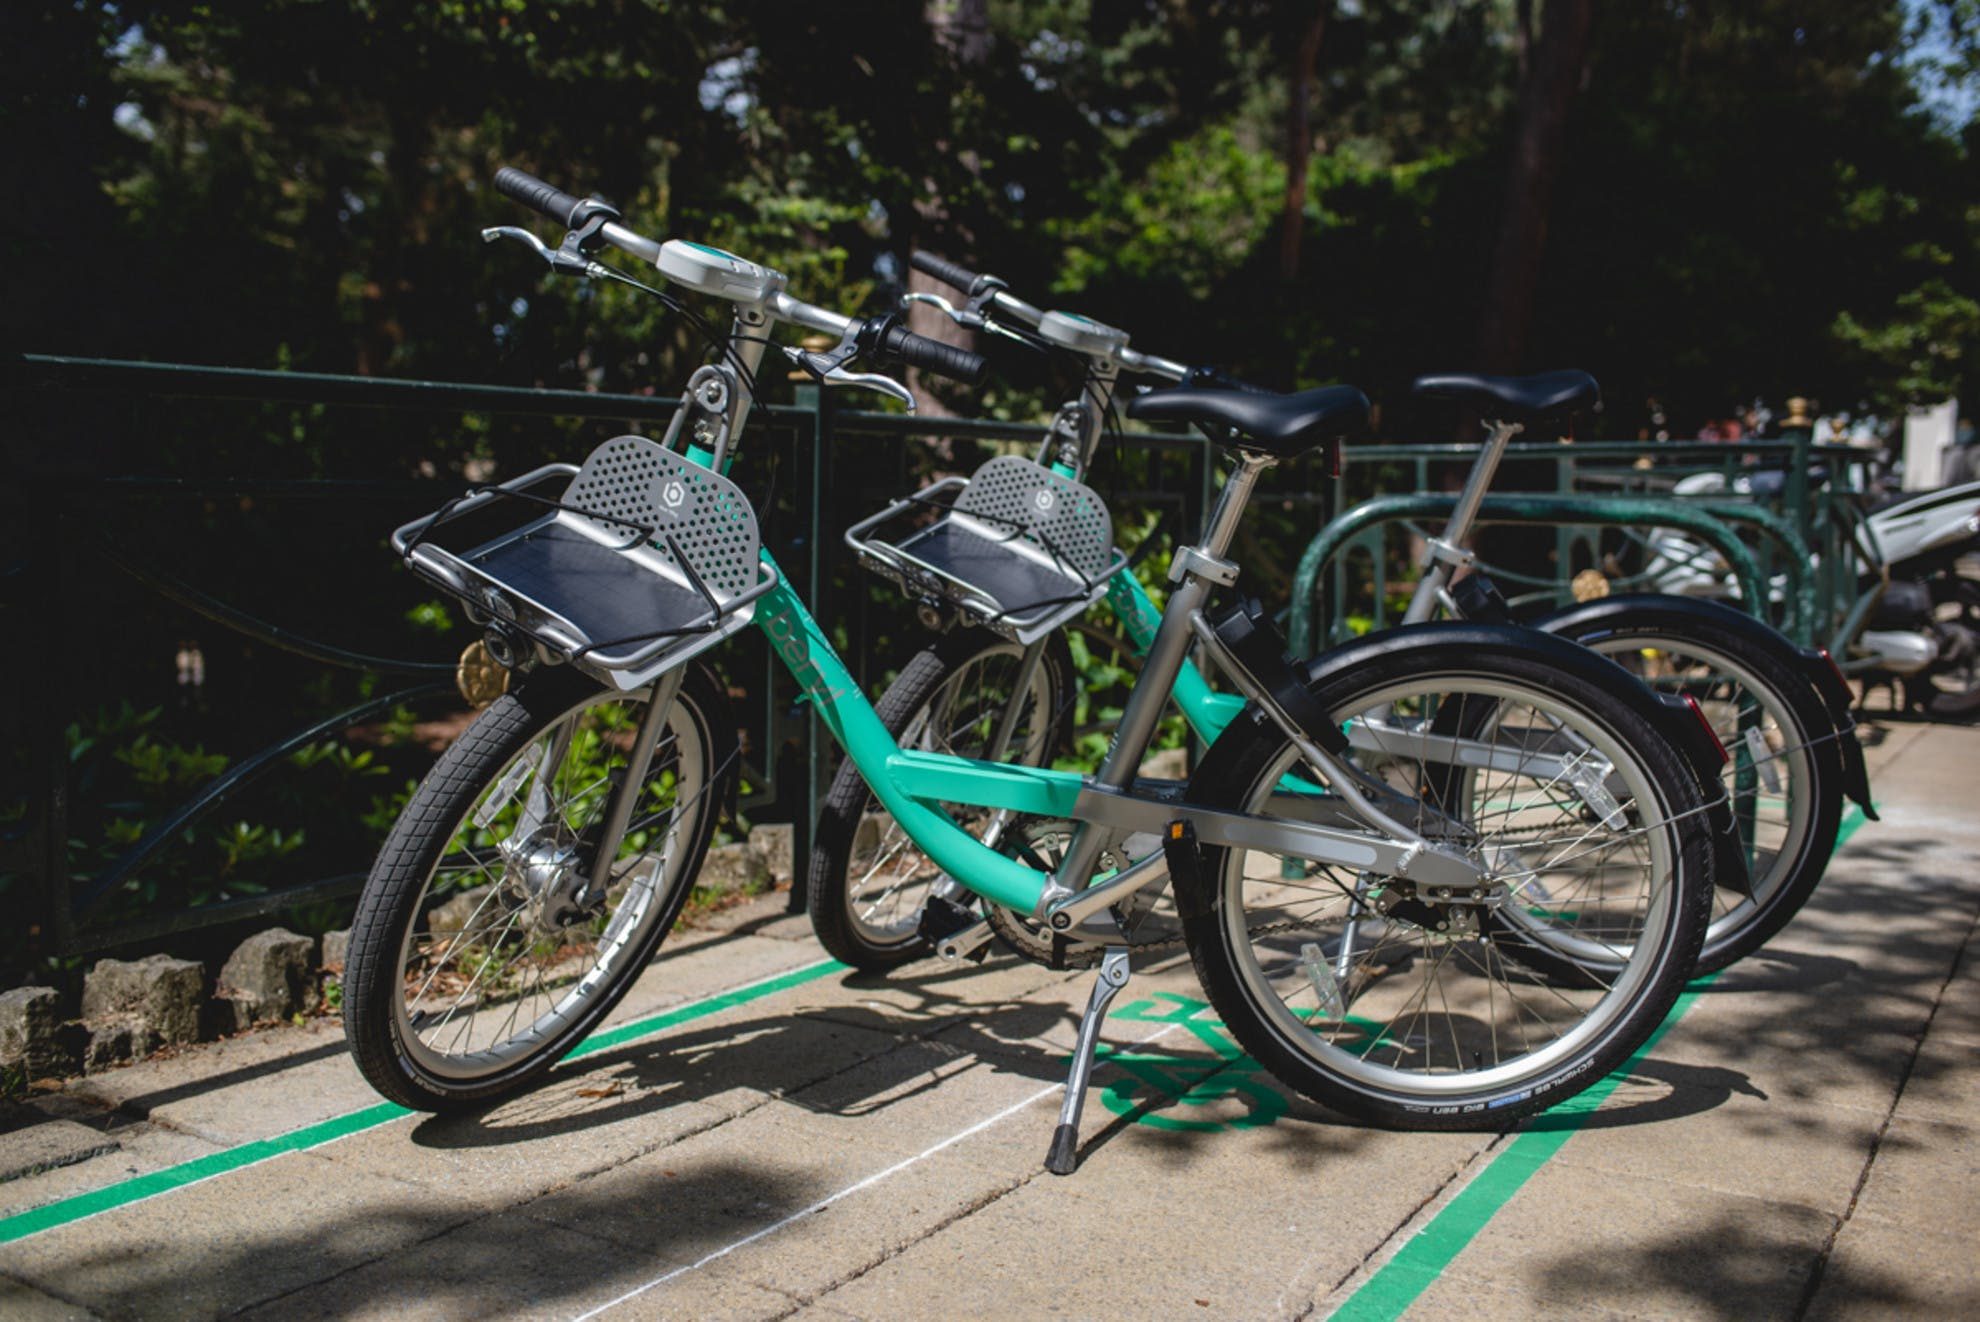 A photo of two Beryl Bikes. They located in Beryl Bays, which are boxes outlined on the sidewalk with paint and tape, signifying that users can park there.